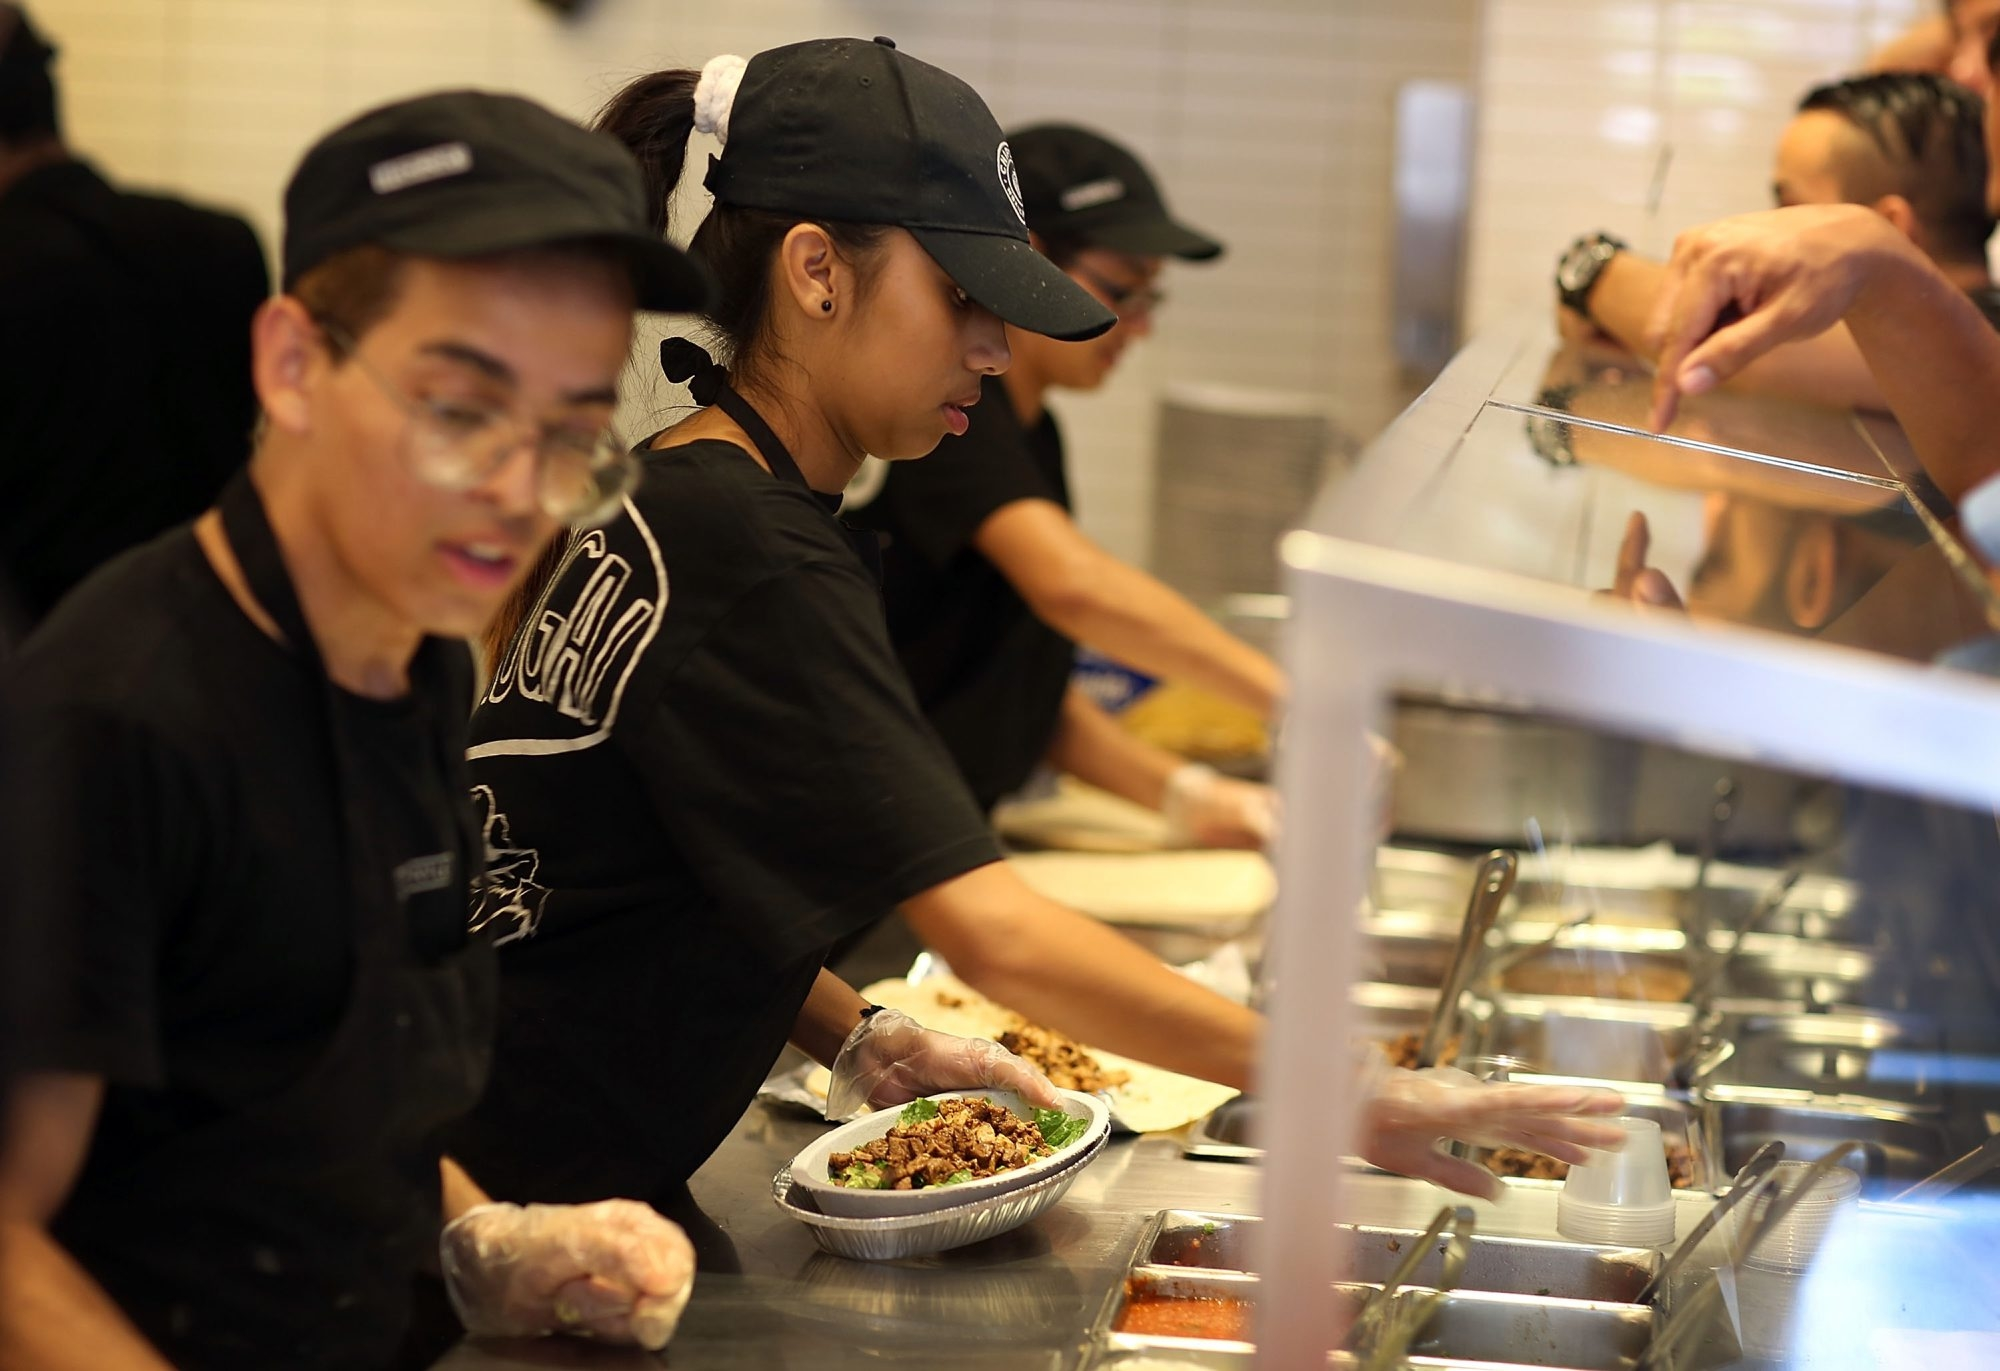 Chipotle Mexican Grill restaurant workers fill orders for customers in Miami, Fla.